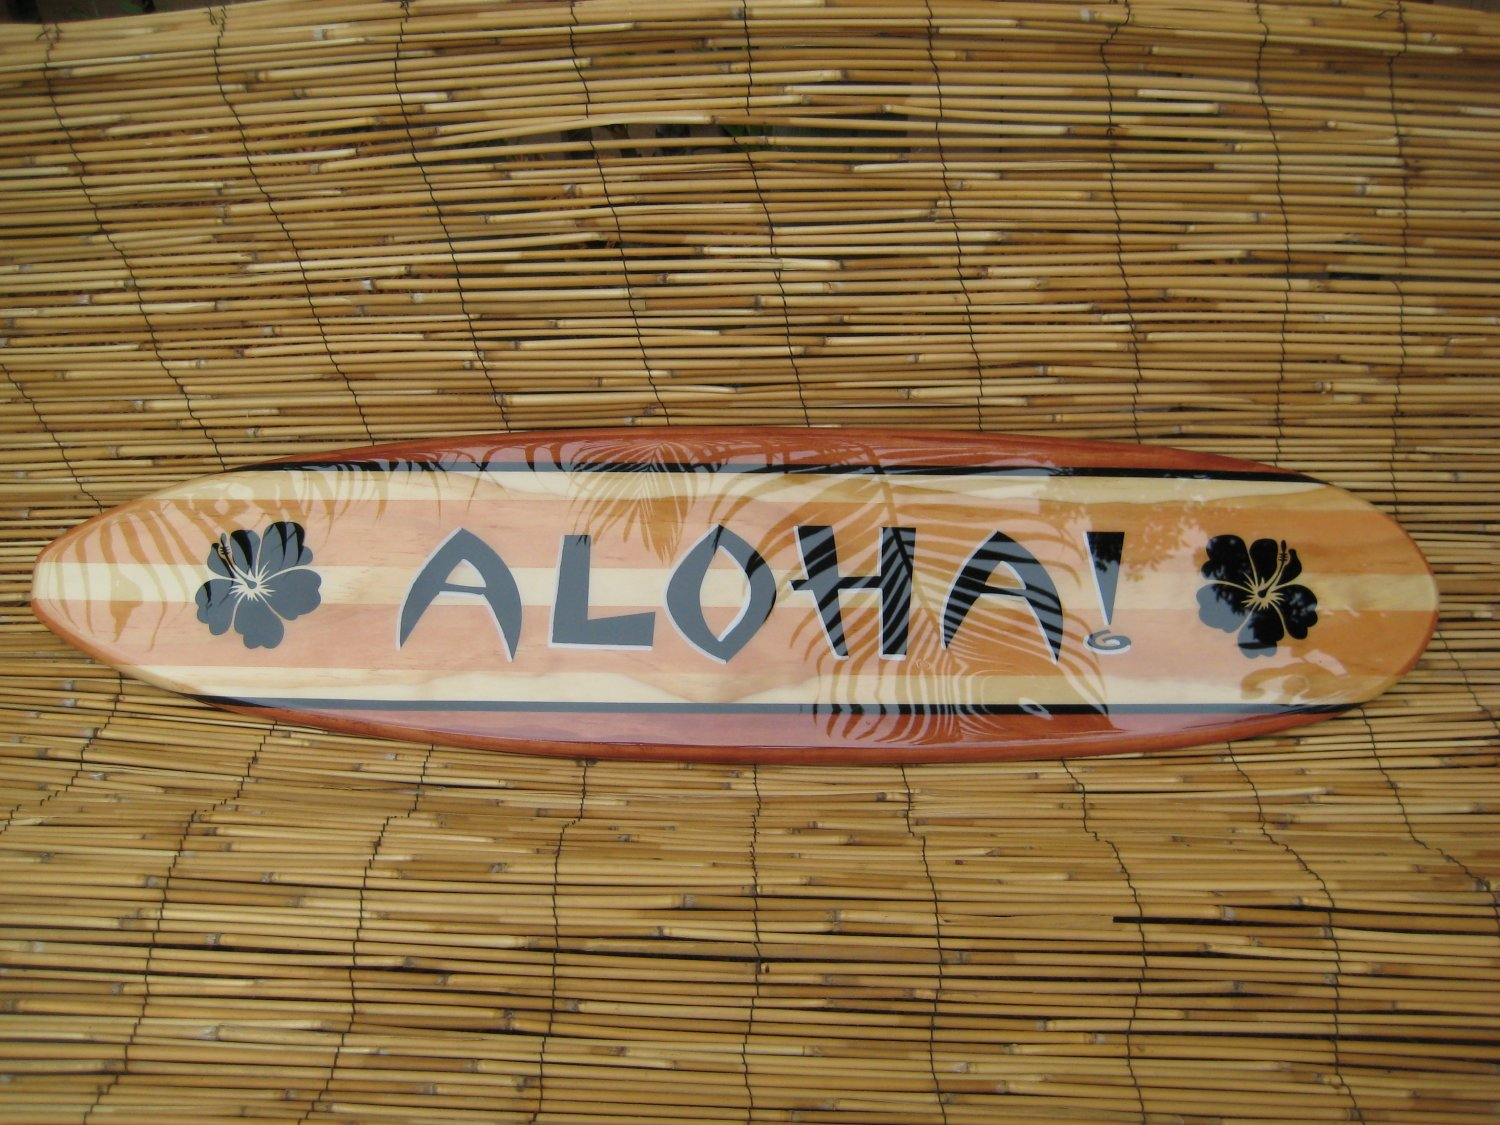 Surfboard Wall Art 3ft decorative hawaiian aloha surfboard wall arttiki soul